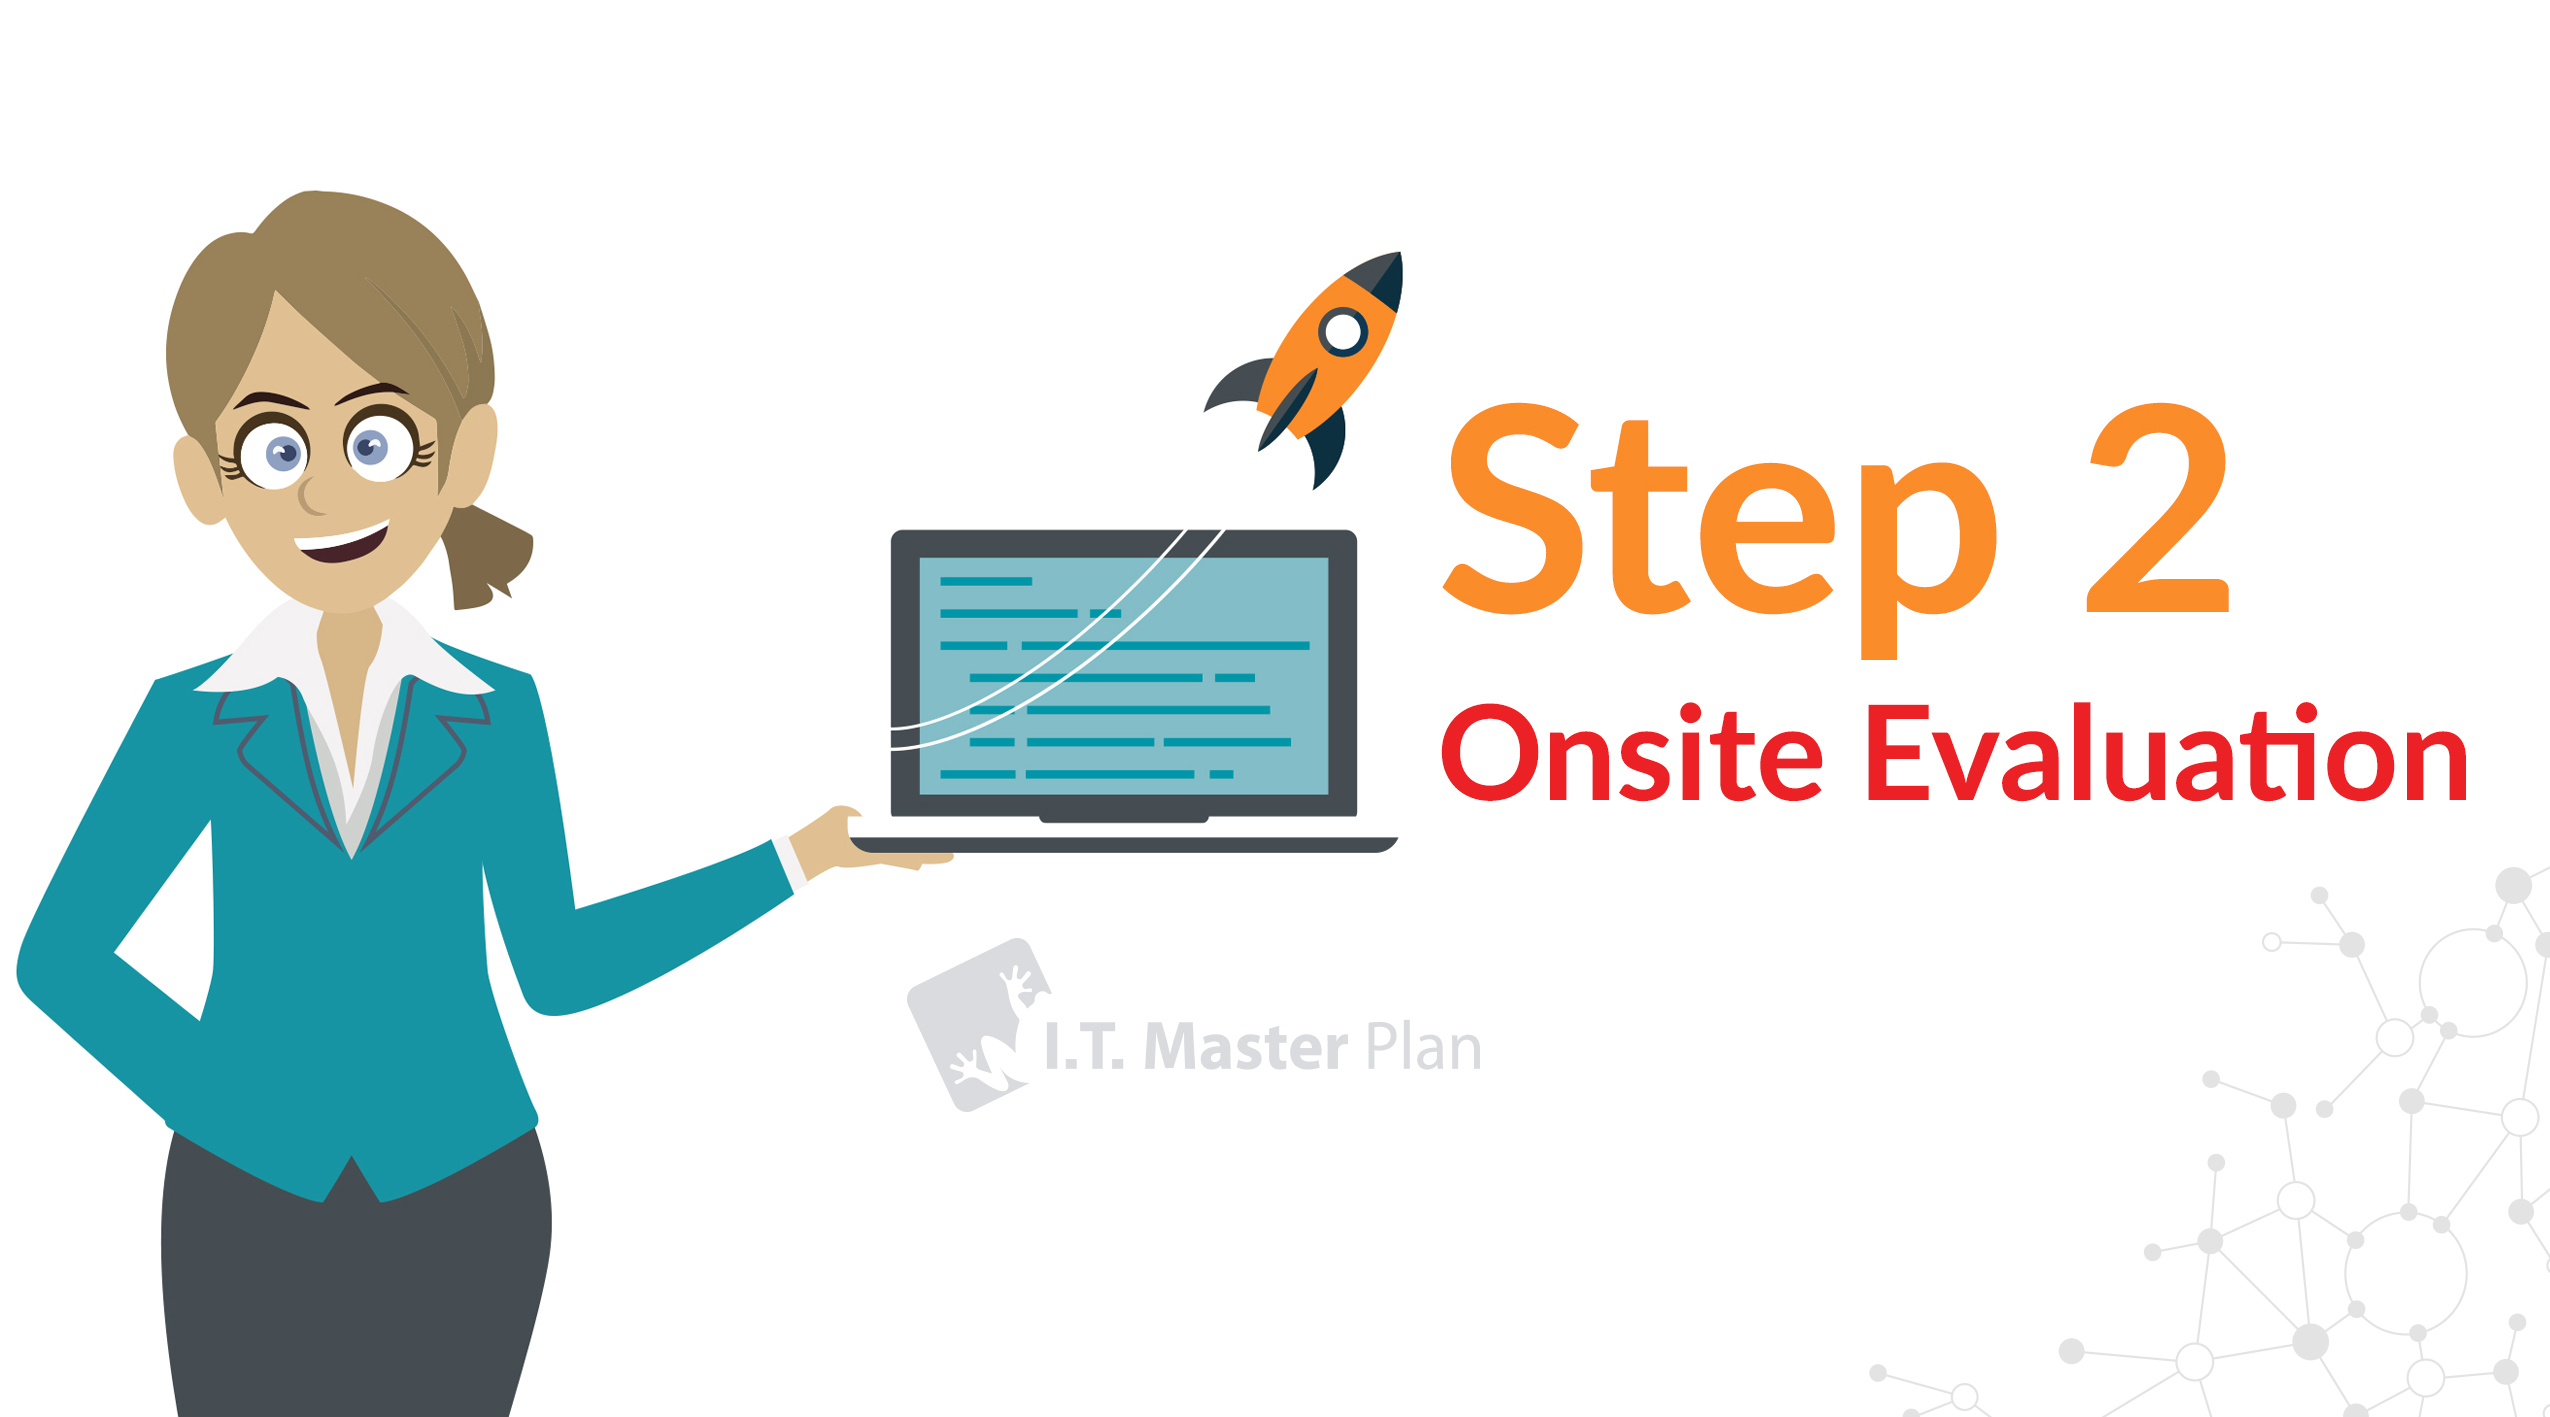 IT Support and Solutions On Site Evaluation: 2nd Step to Leap's IT Master Plan